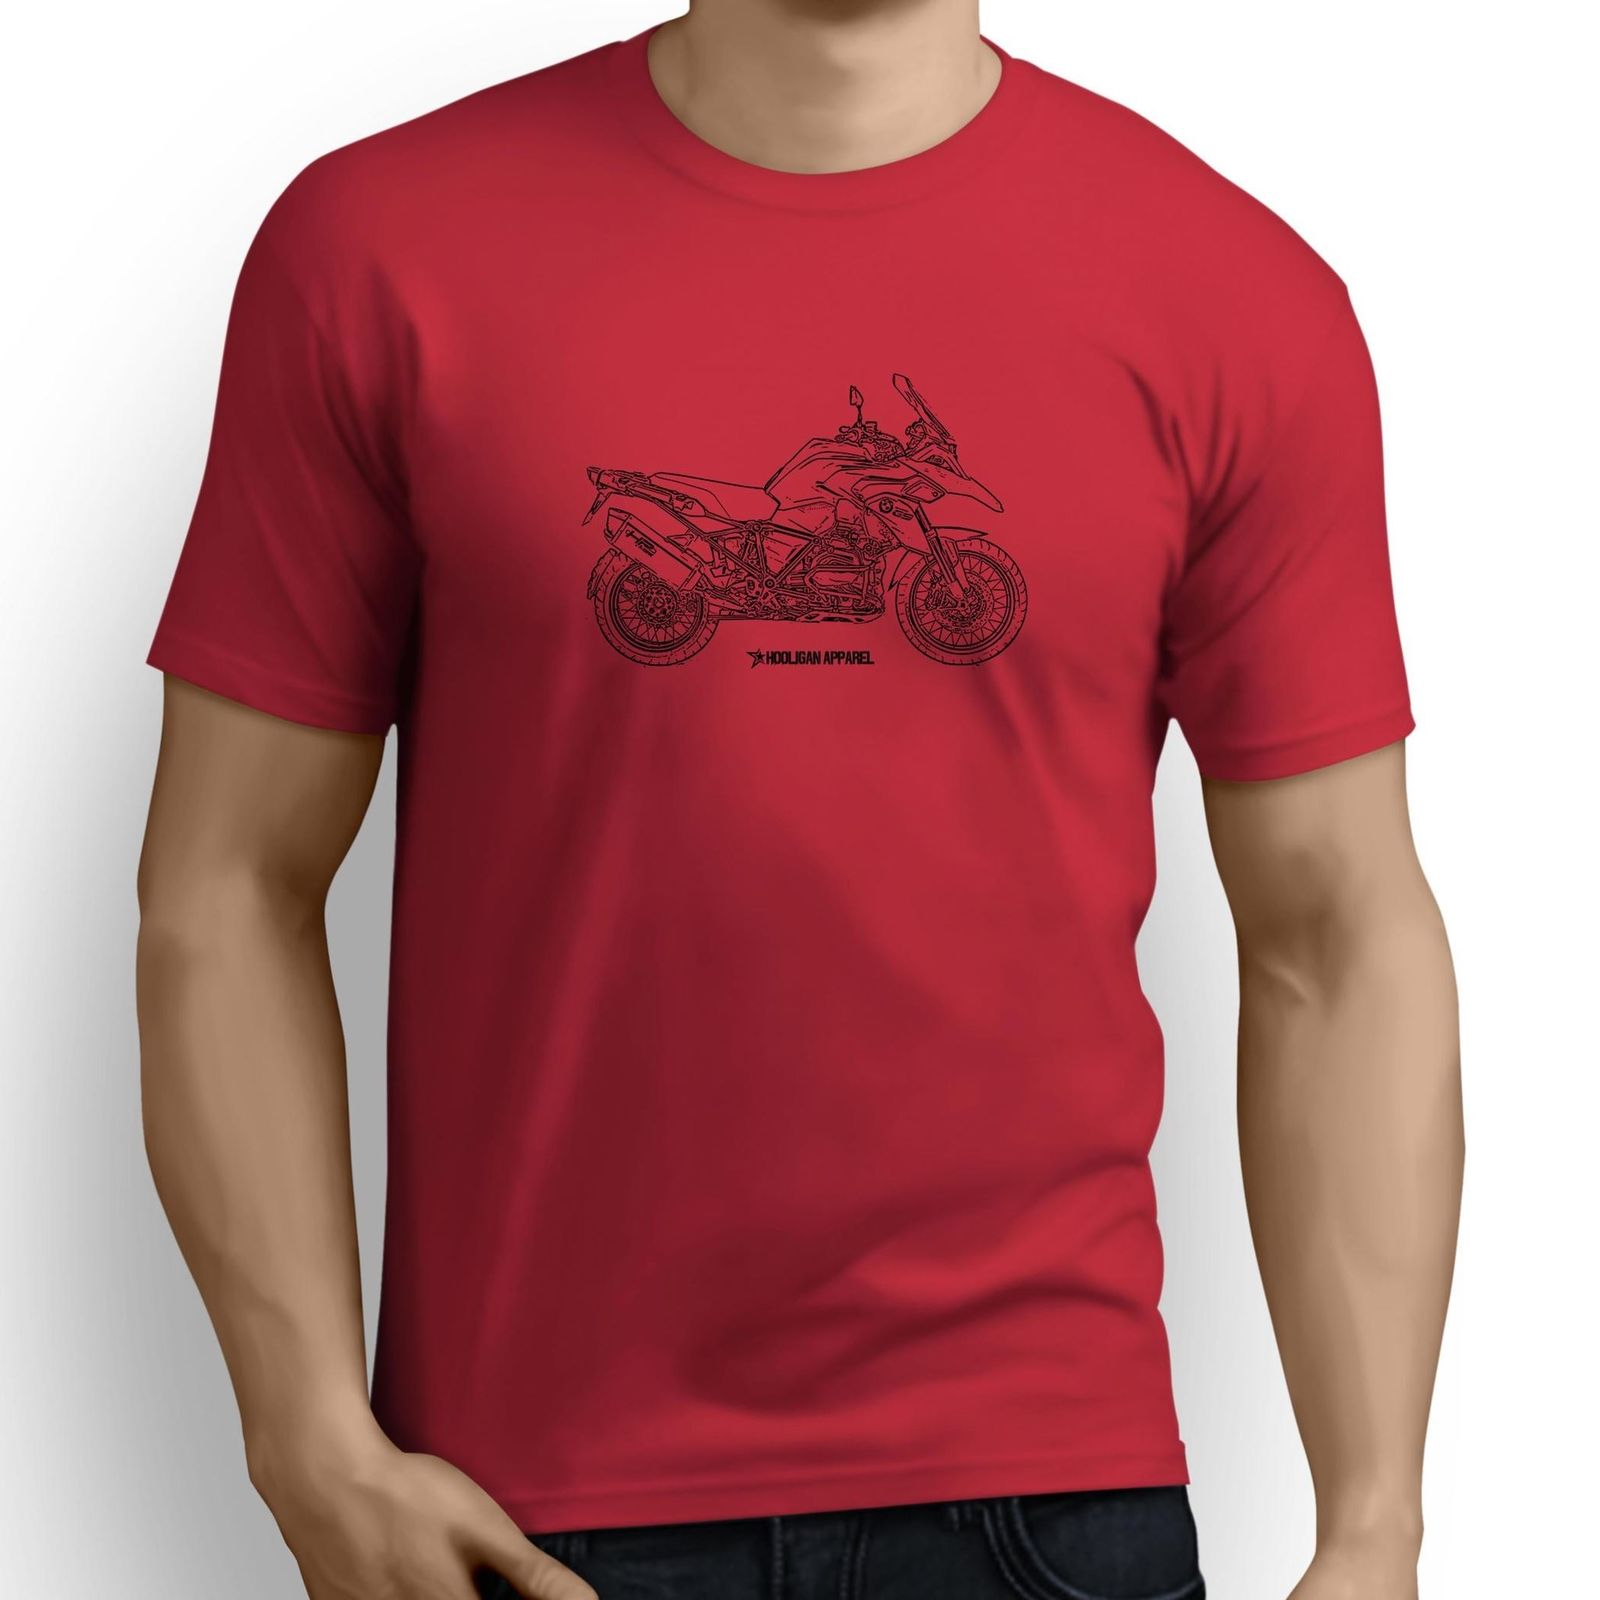 US $12.34 5% OFF|Print Short Sleeve Tees Men Classic German Motorcycle Fans R1200Gs Adventure 2013 Inspired Motorcycle Art Design Your Own Shirt in